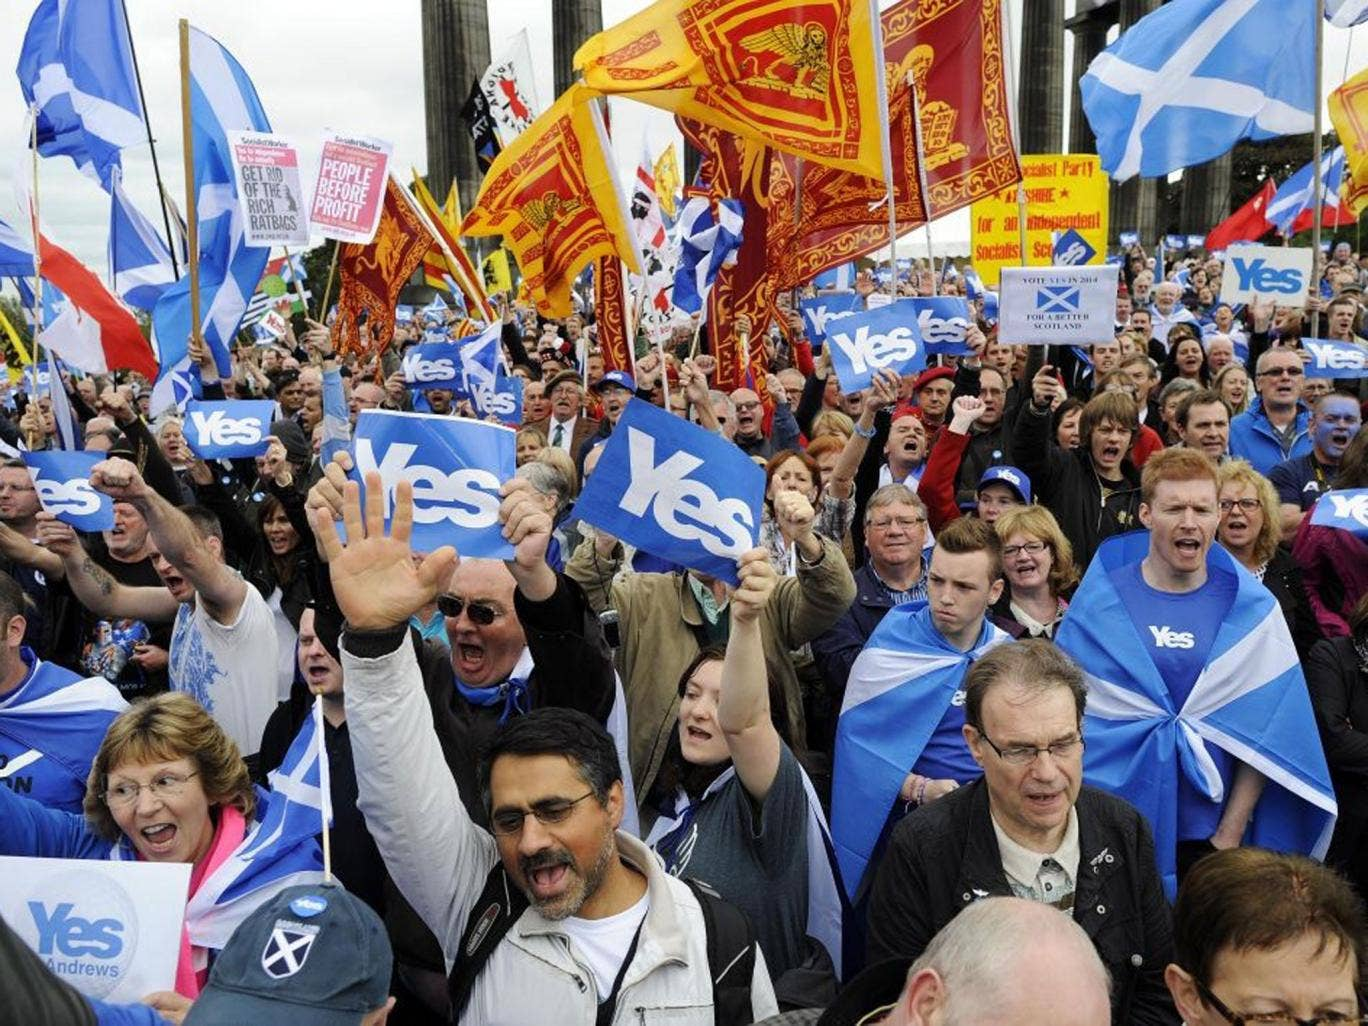 Pro-independence supporters have found a backing from business that the 'No' campaign lacks